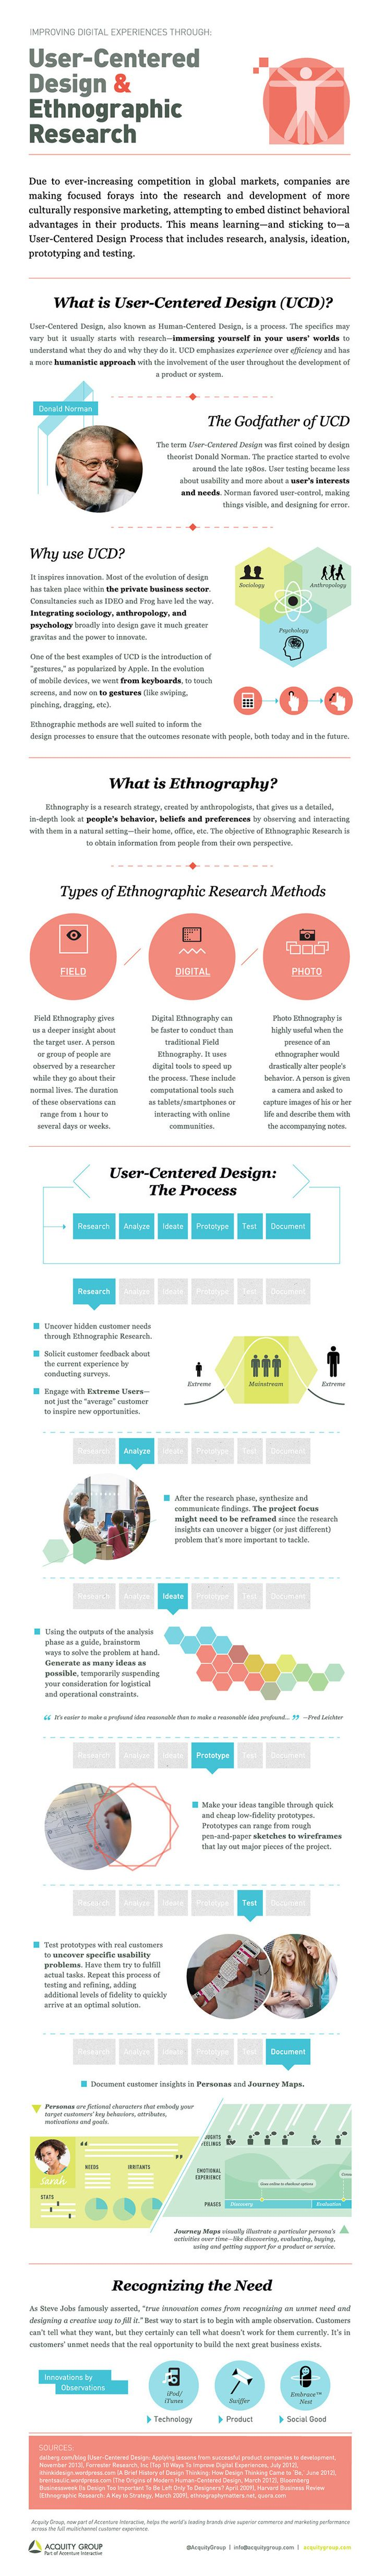 User-Centered Design and Ethnographic Research #infographic | Design Thinking and Innovation Process | Pinterest | User centered design, Design and Design thin…